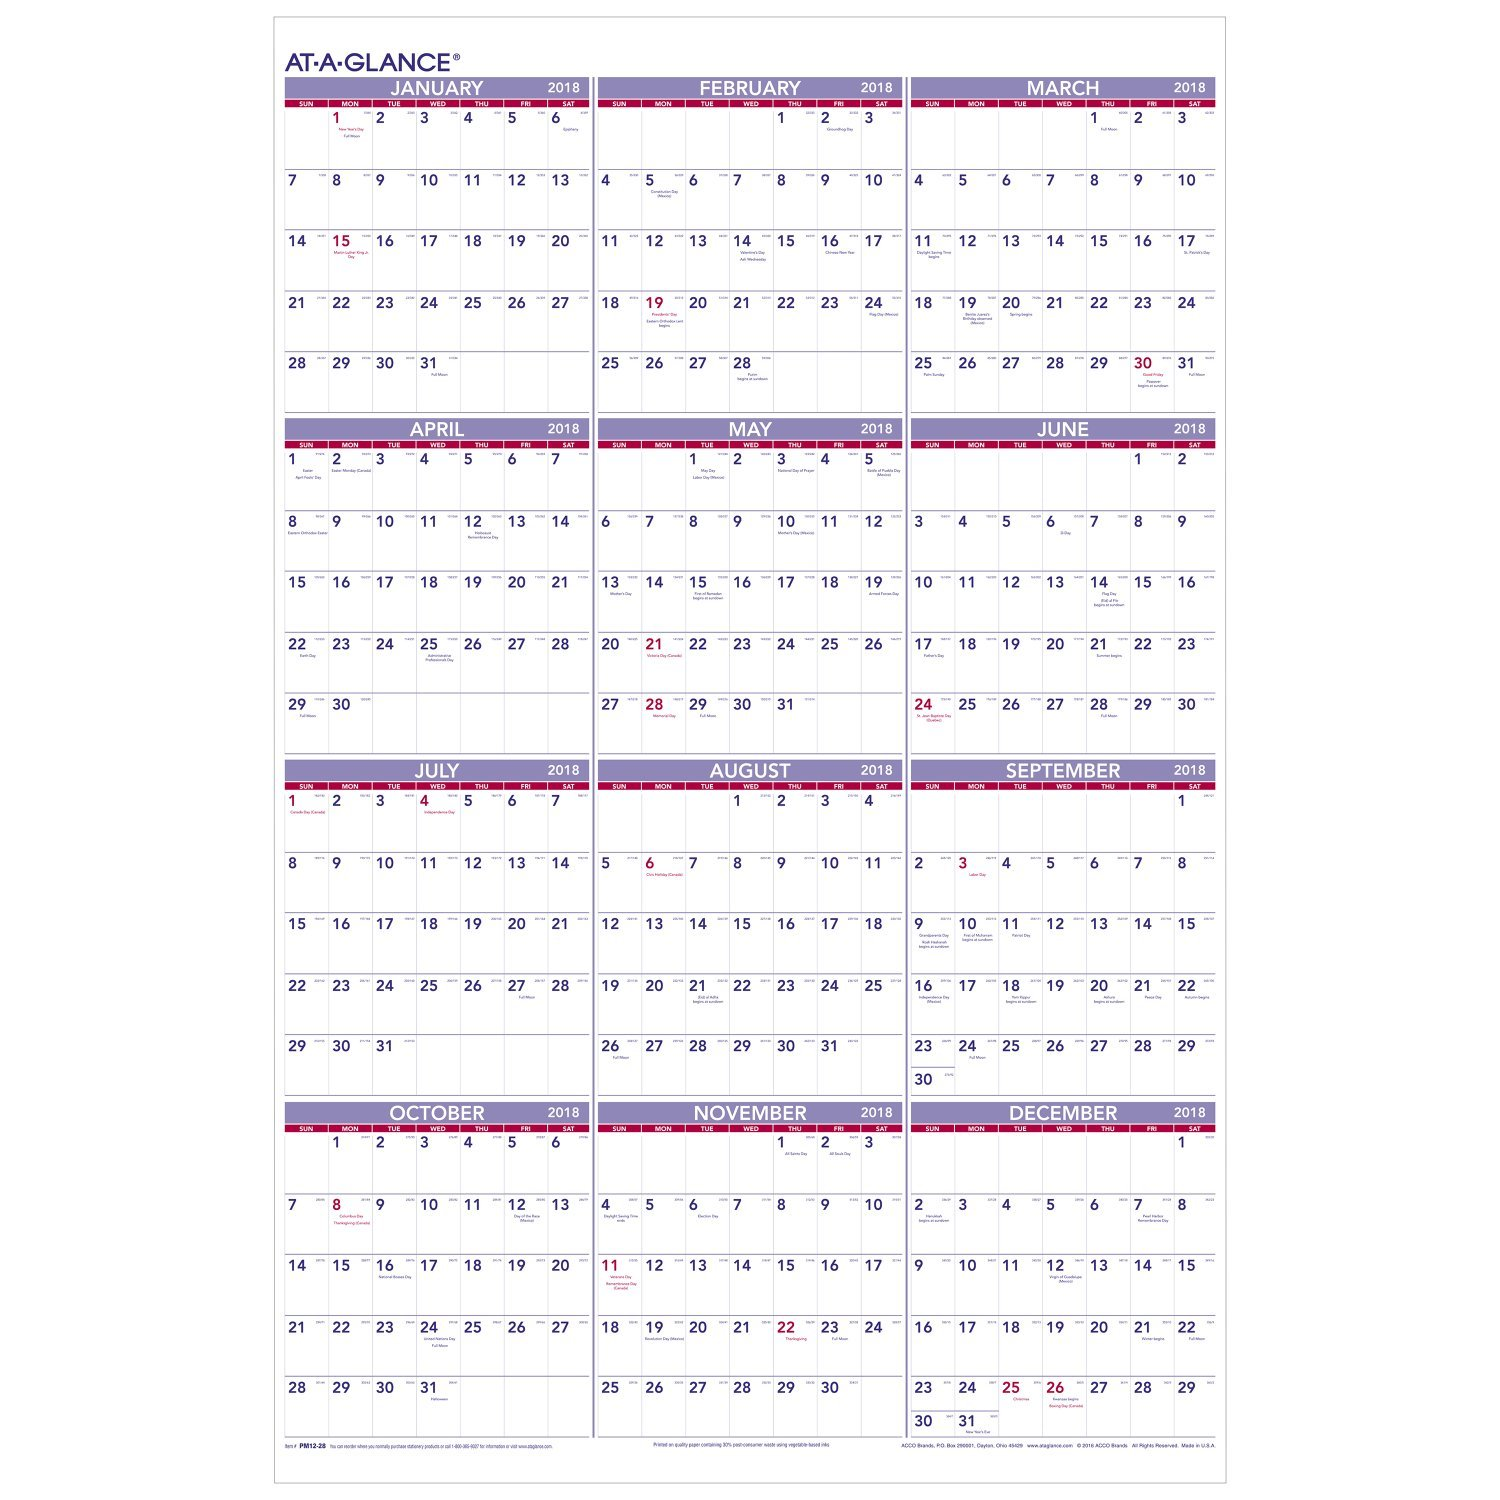 AT-A-GLANCE Yearly Wall Calendar, January 2018 - December 2018, 24'' x 36'' (PM1228)